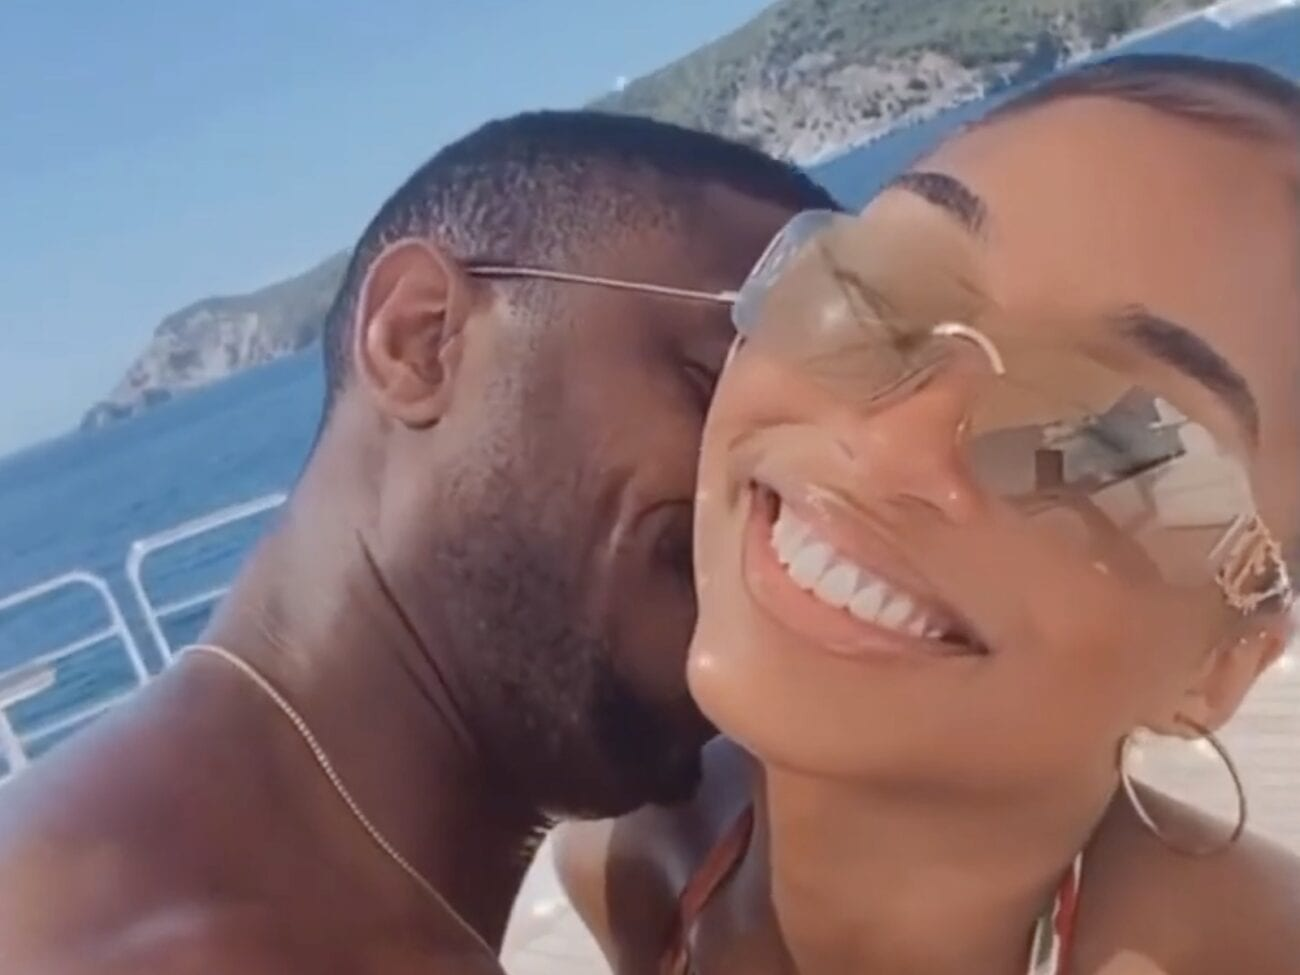 Happy belated birthday to Michel B. Jordan. From these hot pics, we know he's having a great Valentine's Day with his girlfriend. Check them out!